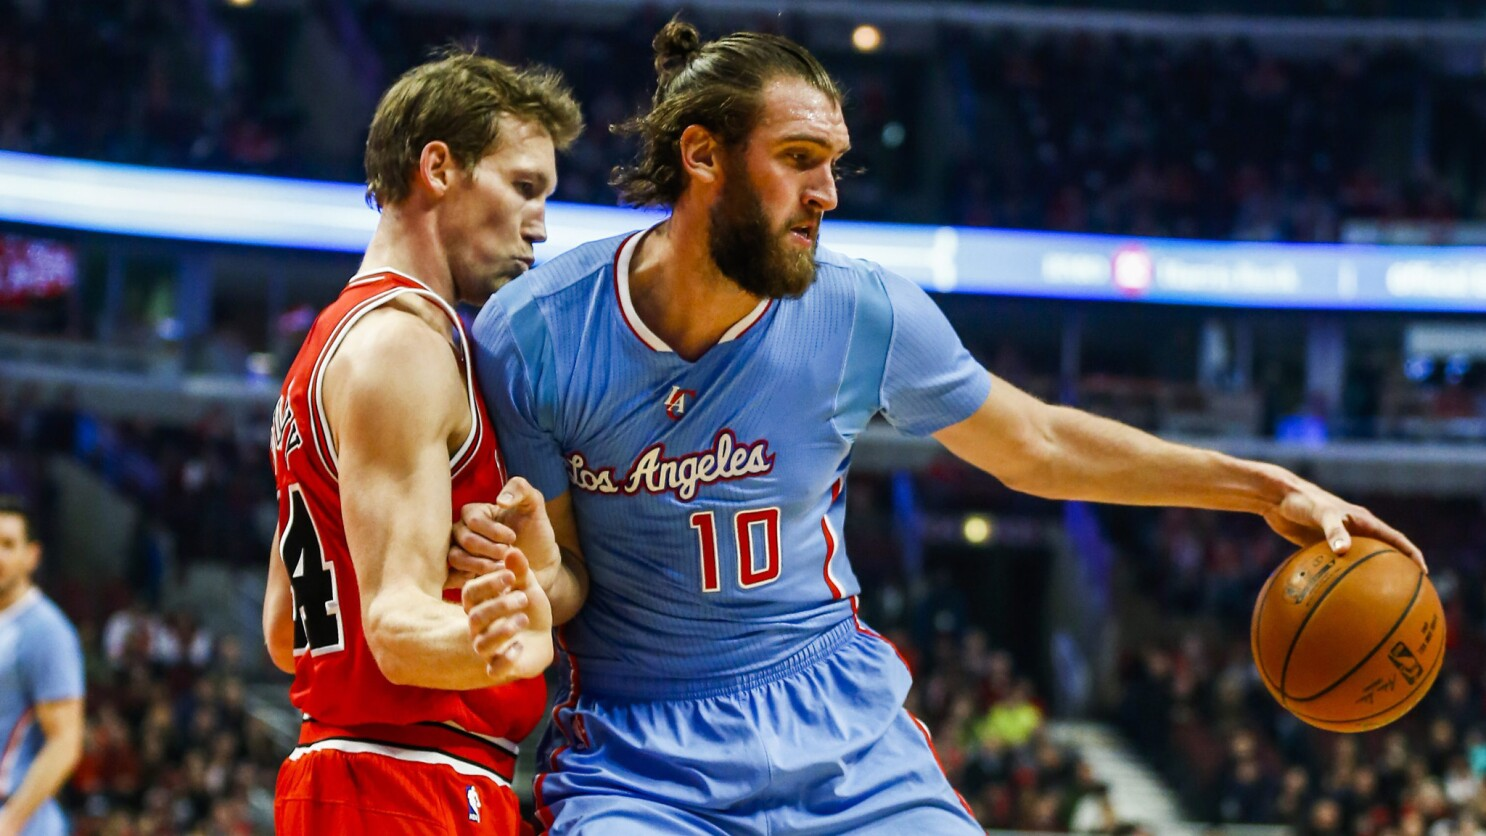 Clippers take 96-86 victory over Bulls after fourth-quarter surge - Los Angeles Times